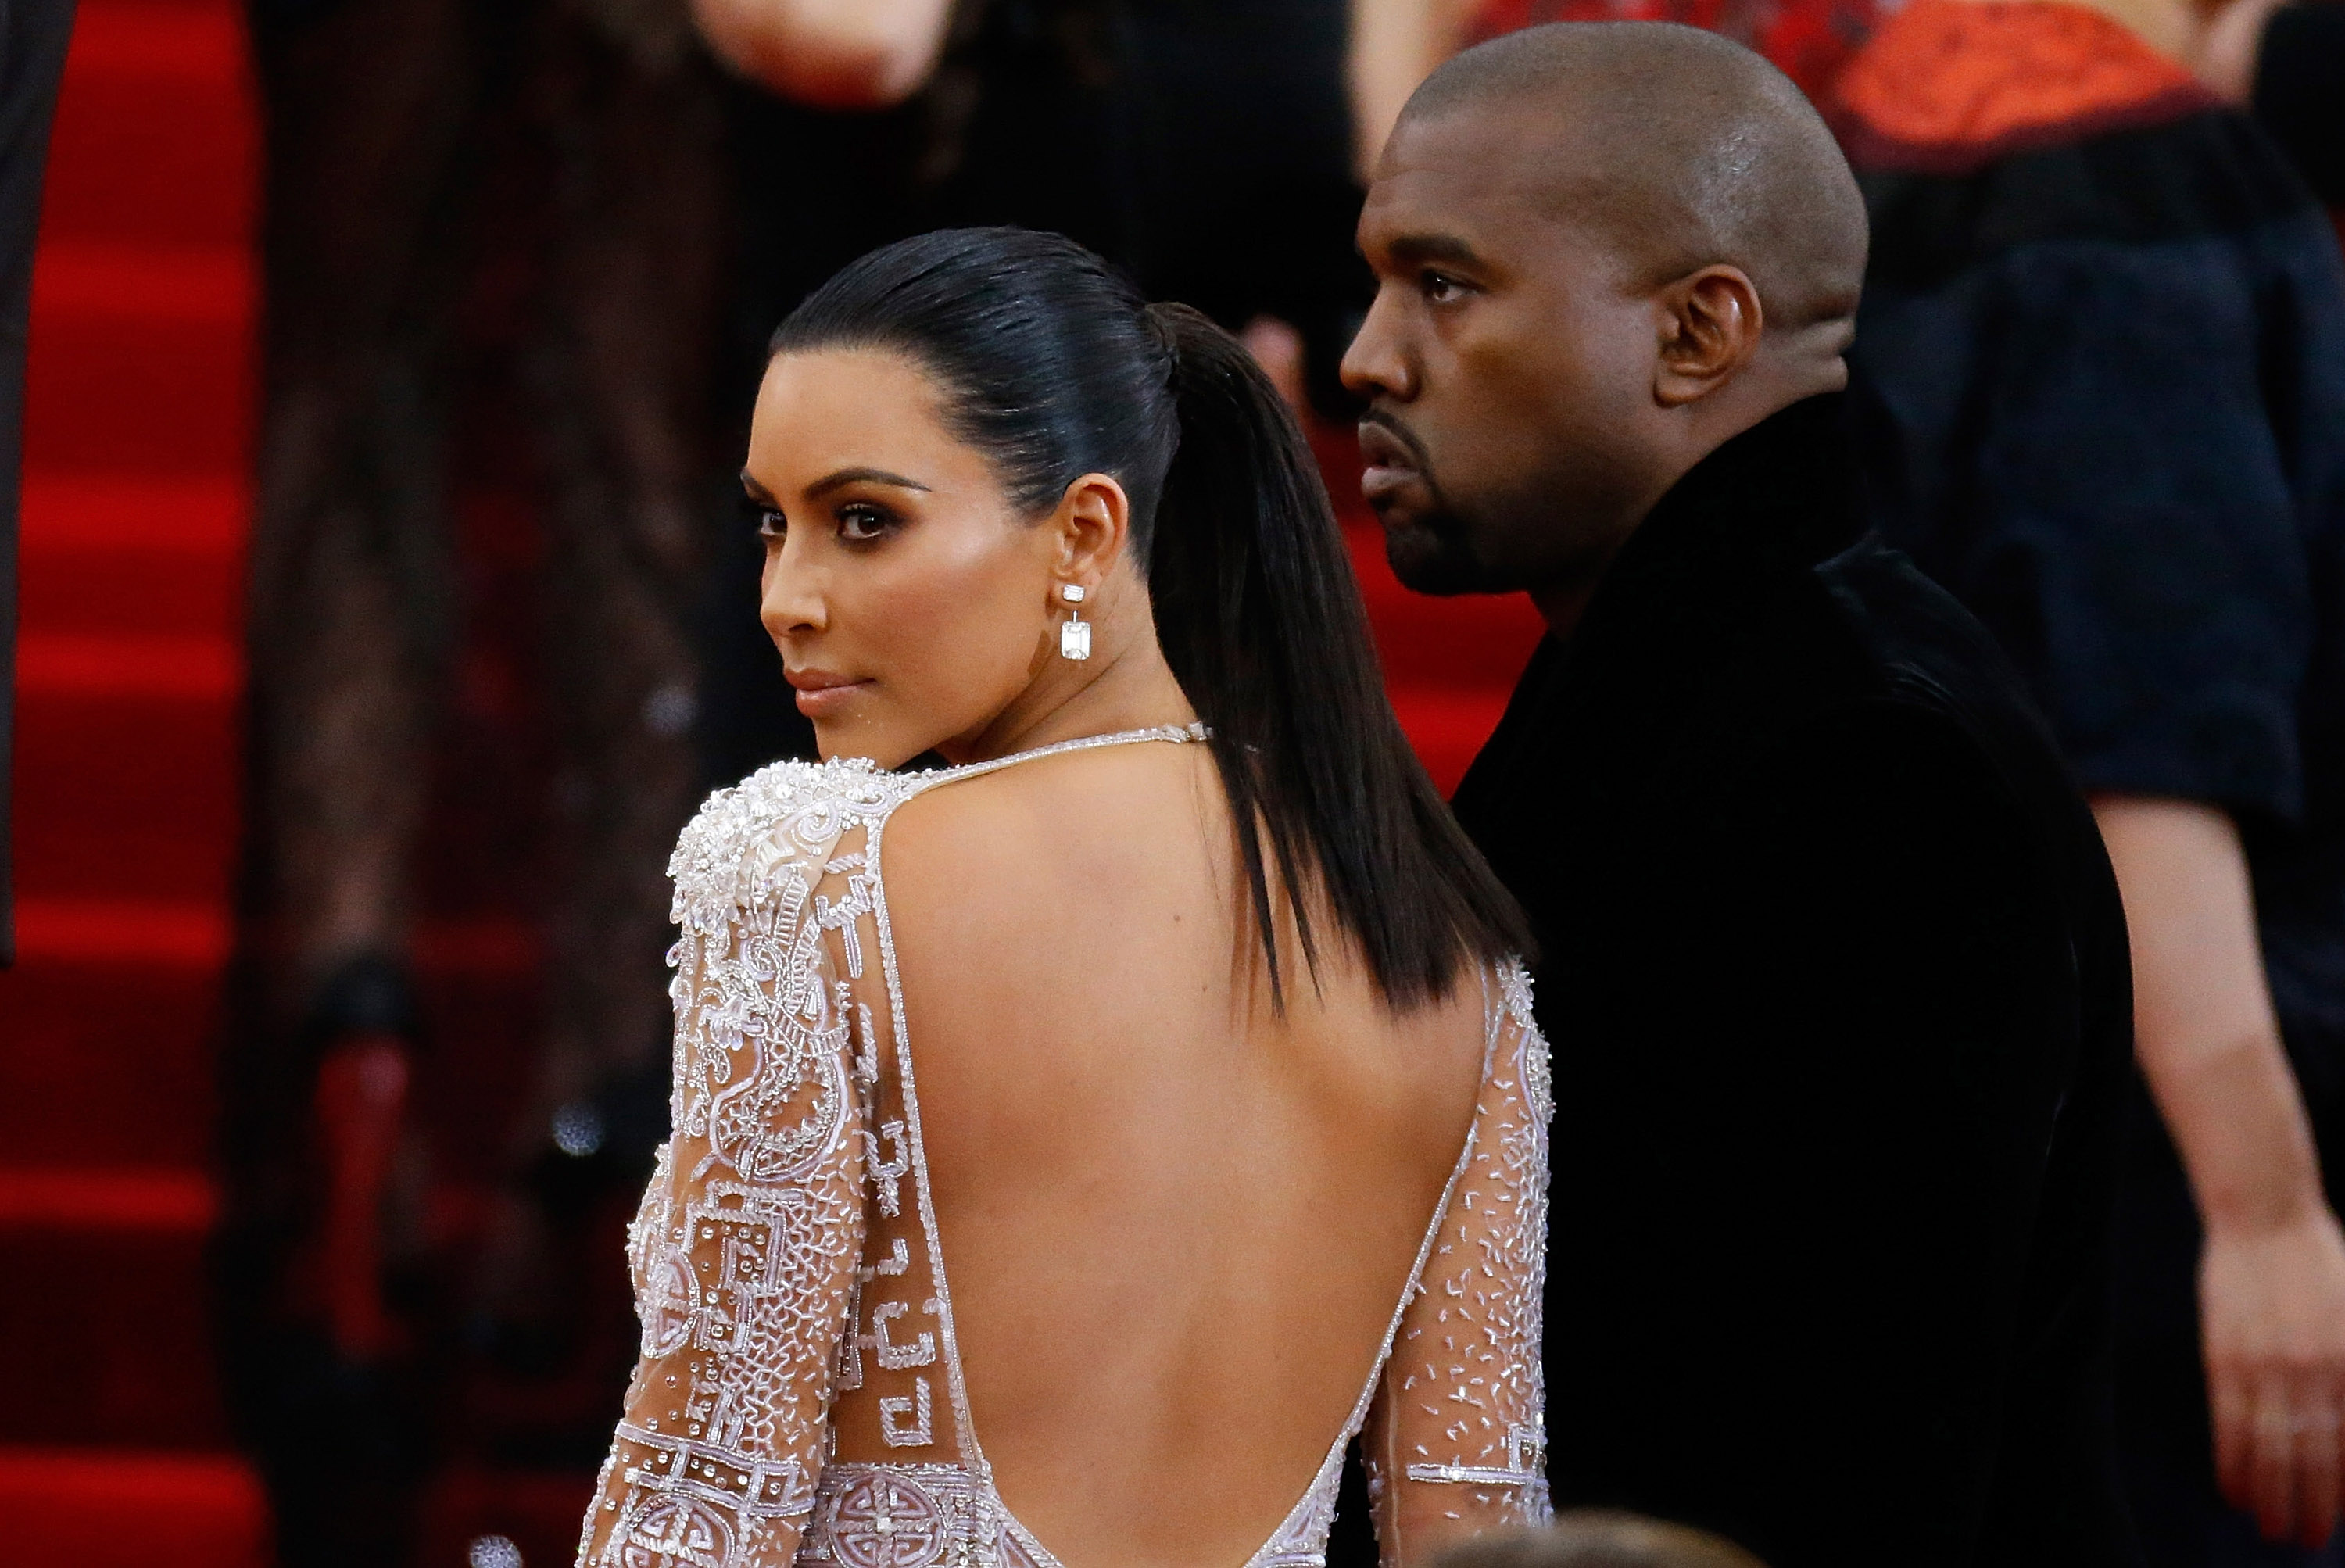 Kim Kardashian is saving all of her iconic outfits for her daughter, and she gave us a sneak peek